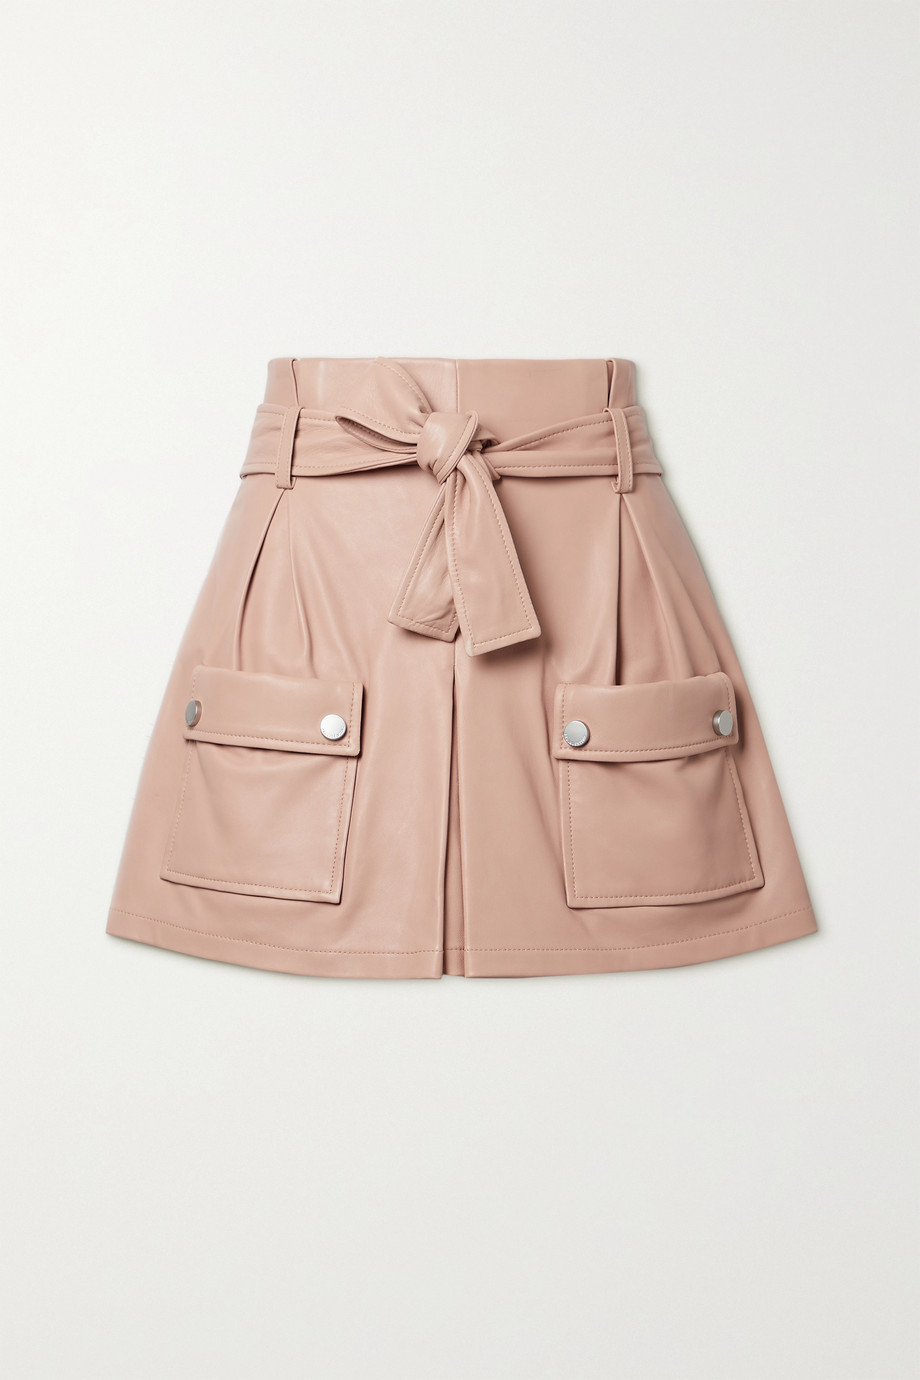 REDValentino Belted leather shorts